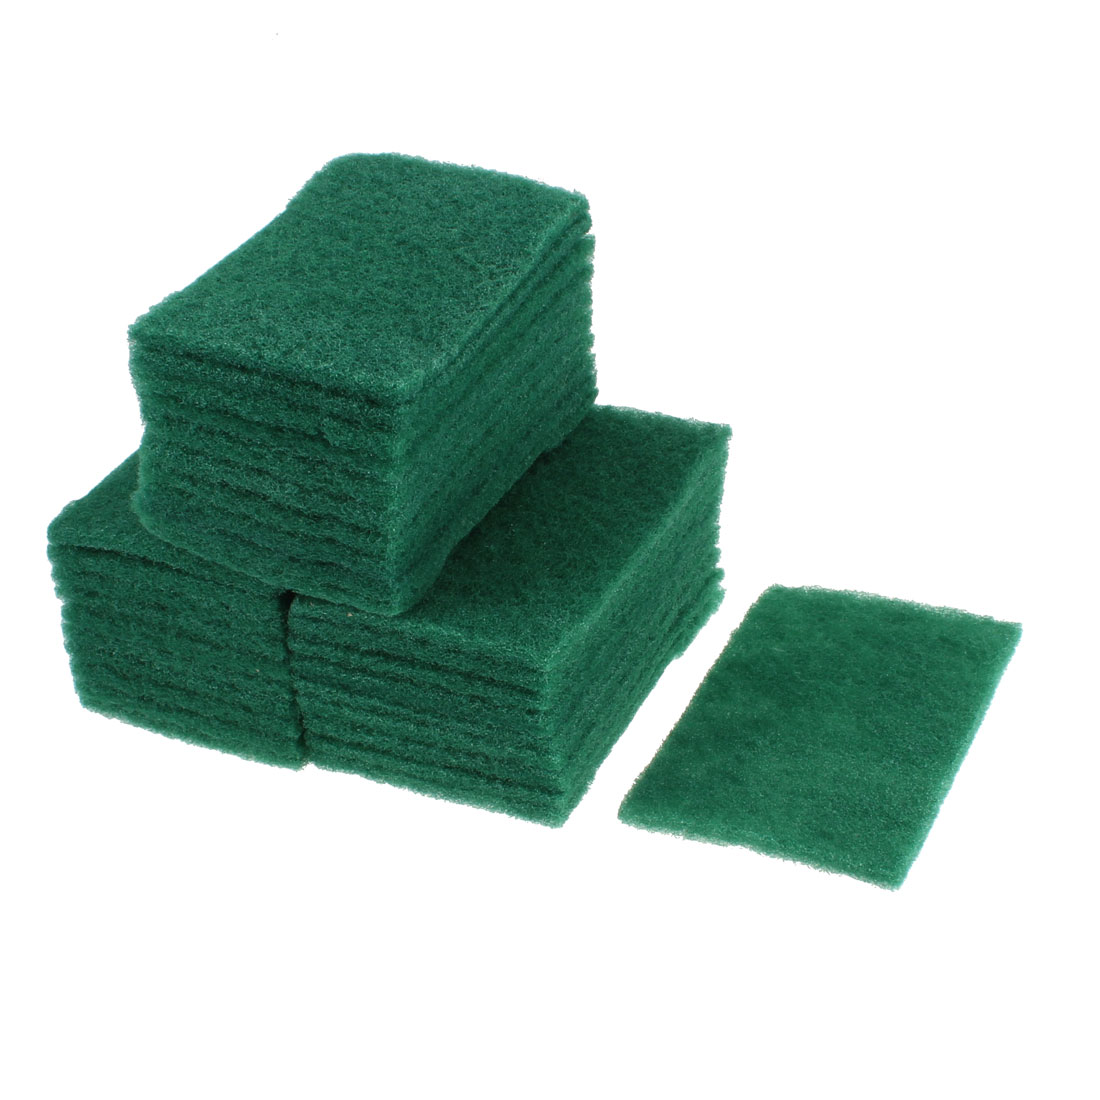 Sponge Rectangle Bowl Dish Wash Cleaning Pad 145mm x 97mm Green 30pcs